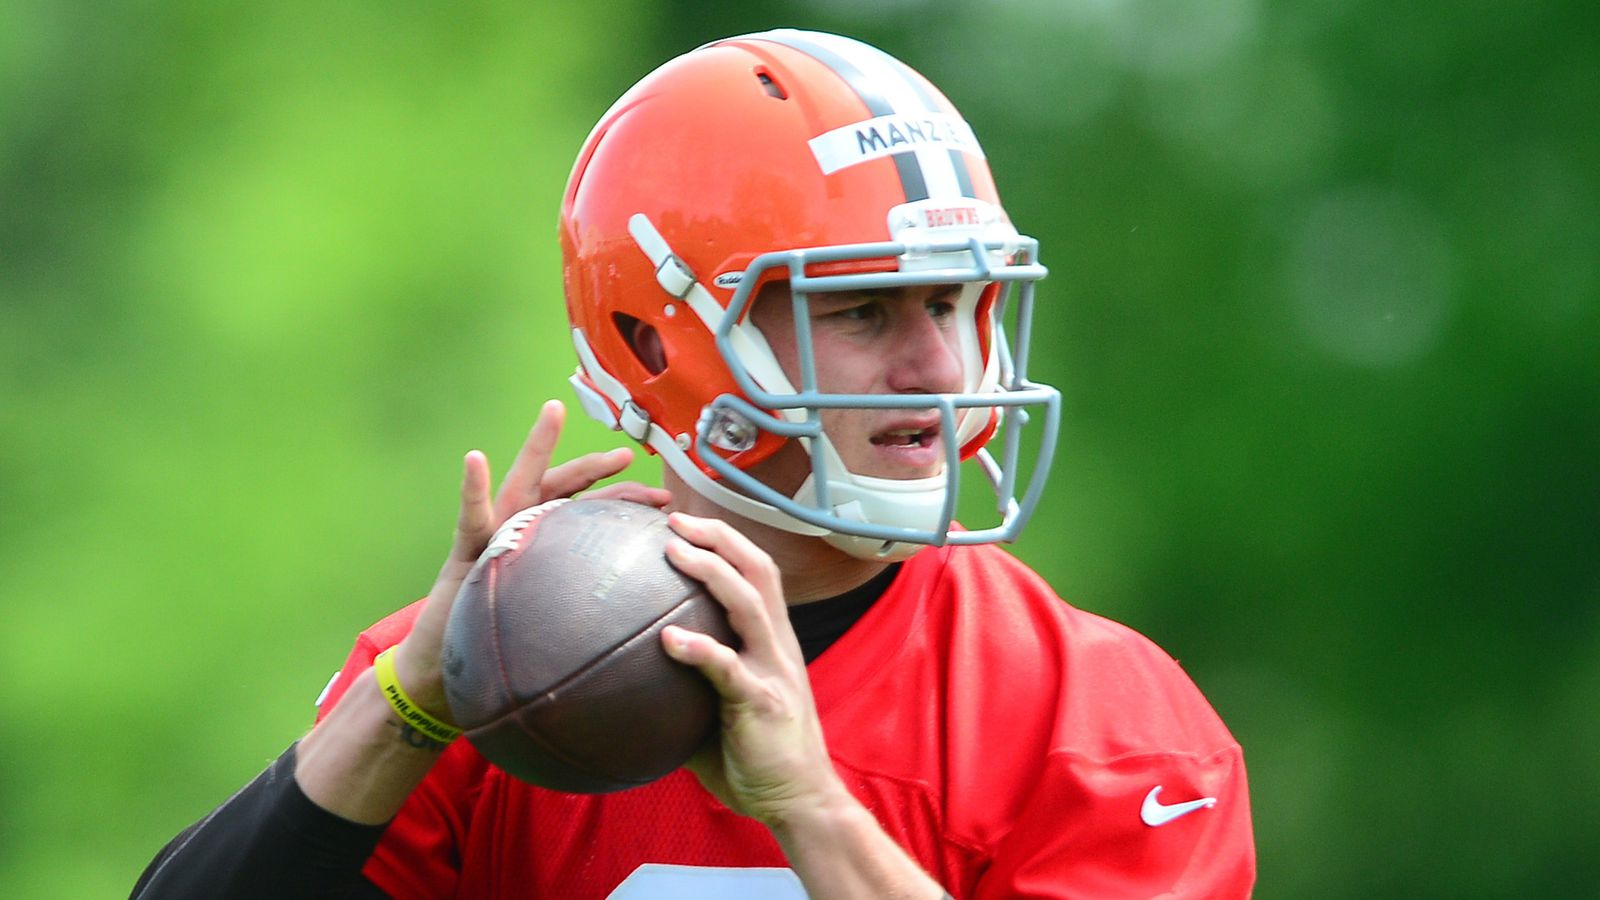 UPDATED: Sexual harrassment lawsuit against Browns QB